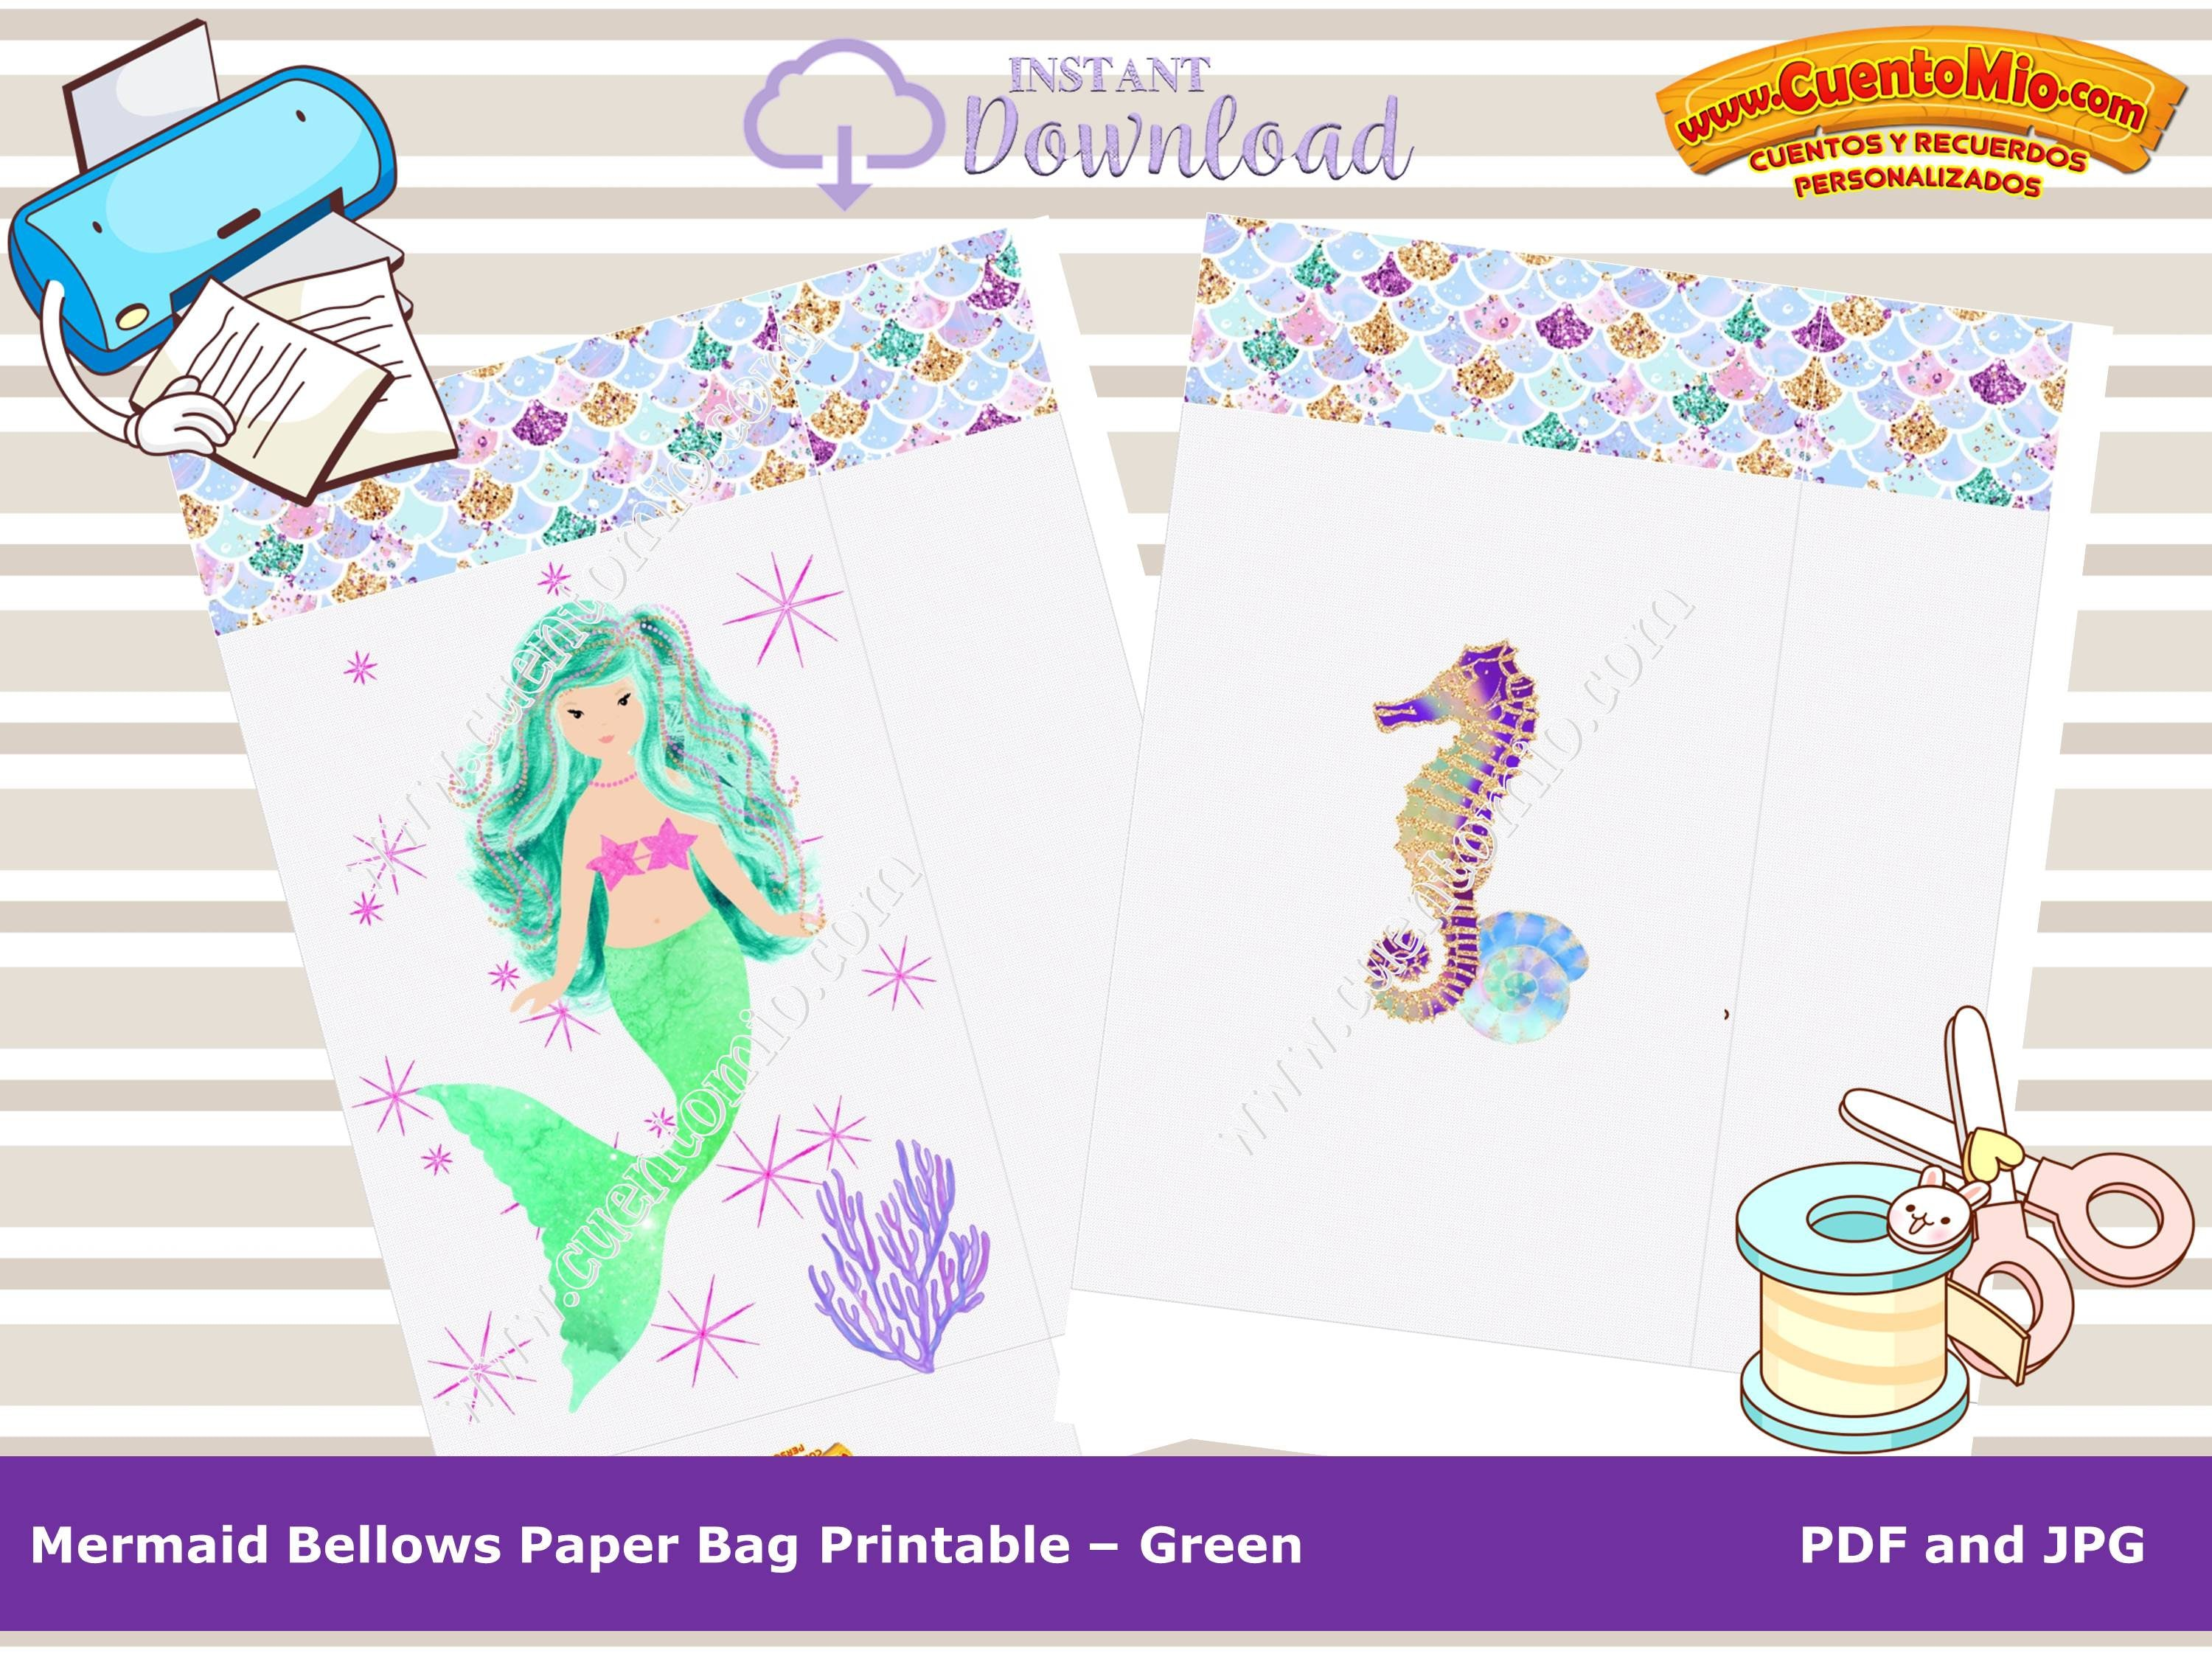 image relating to Printable Mermaid titled Mermaid Handle Luggage, Printable Mermaid Luggage, Do it yourself, Instantaneous Obtain, Environmentally friendly Mermaid, Mermaid Bag, Printable Mermaid Paper Bag, Emerald Mermaid